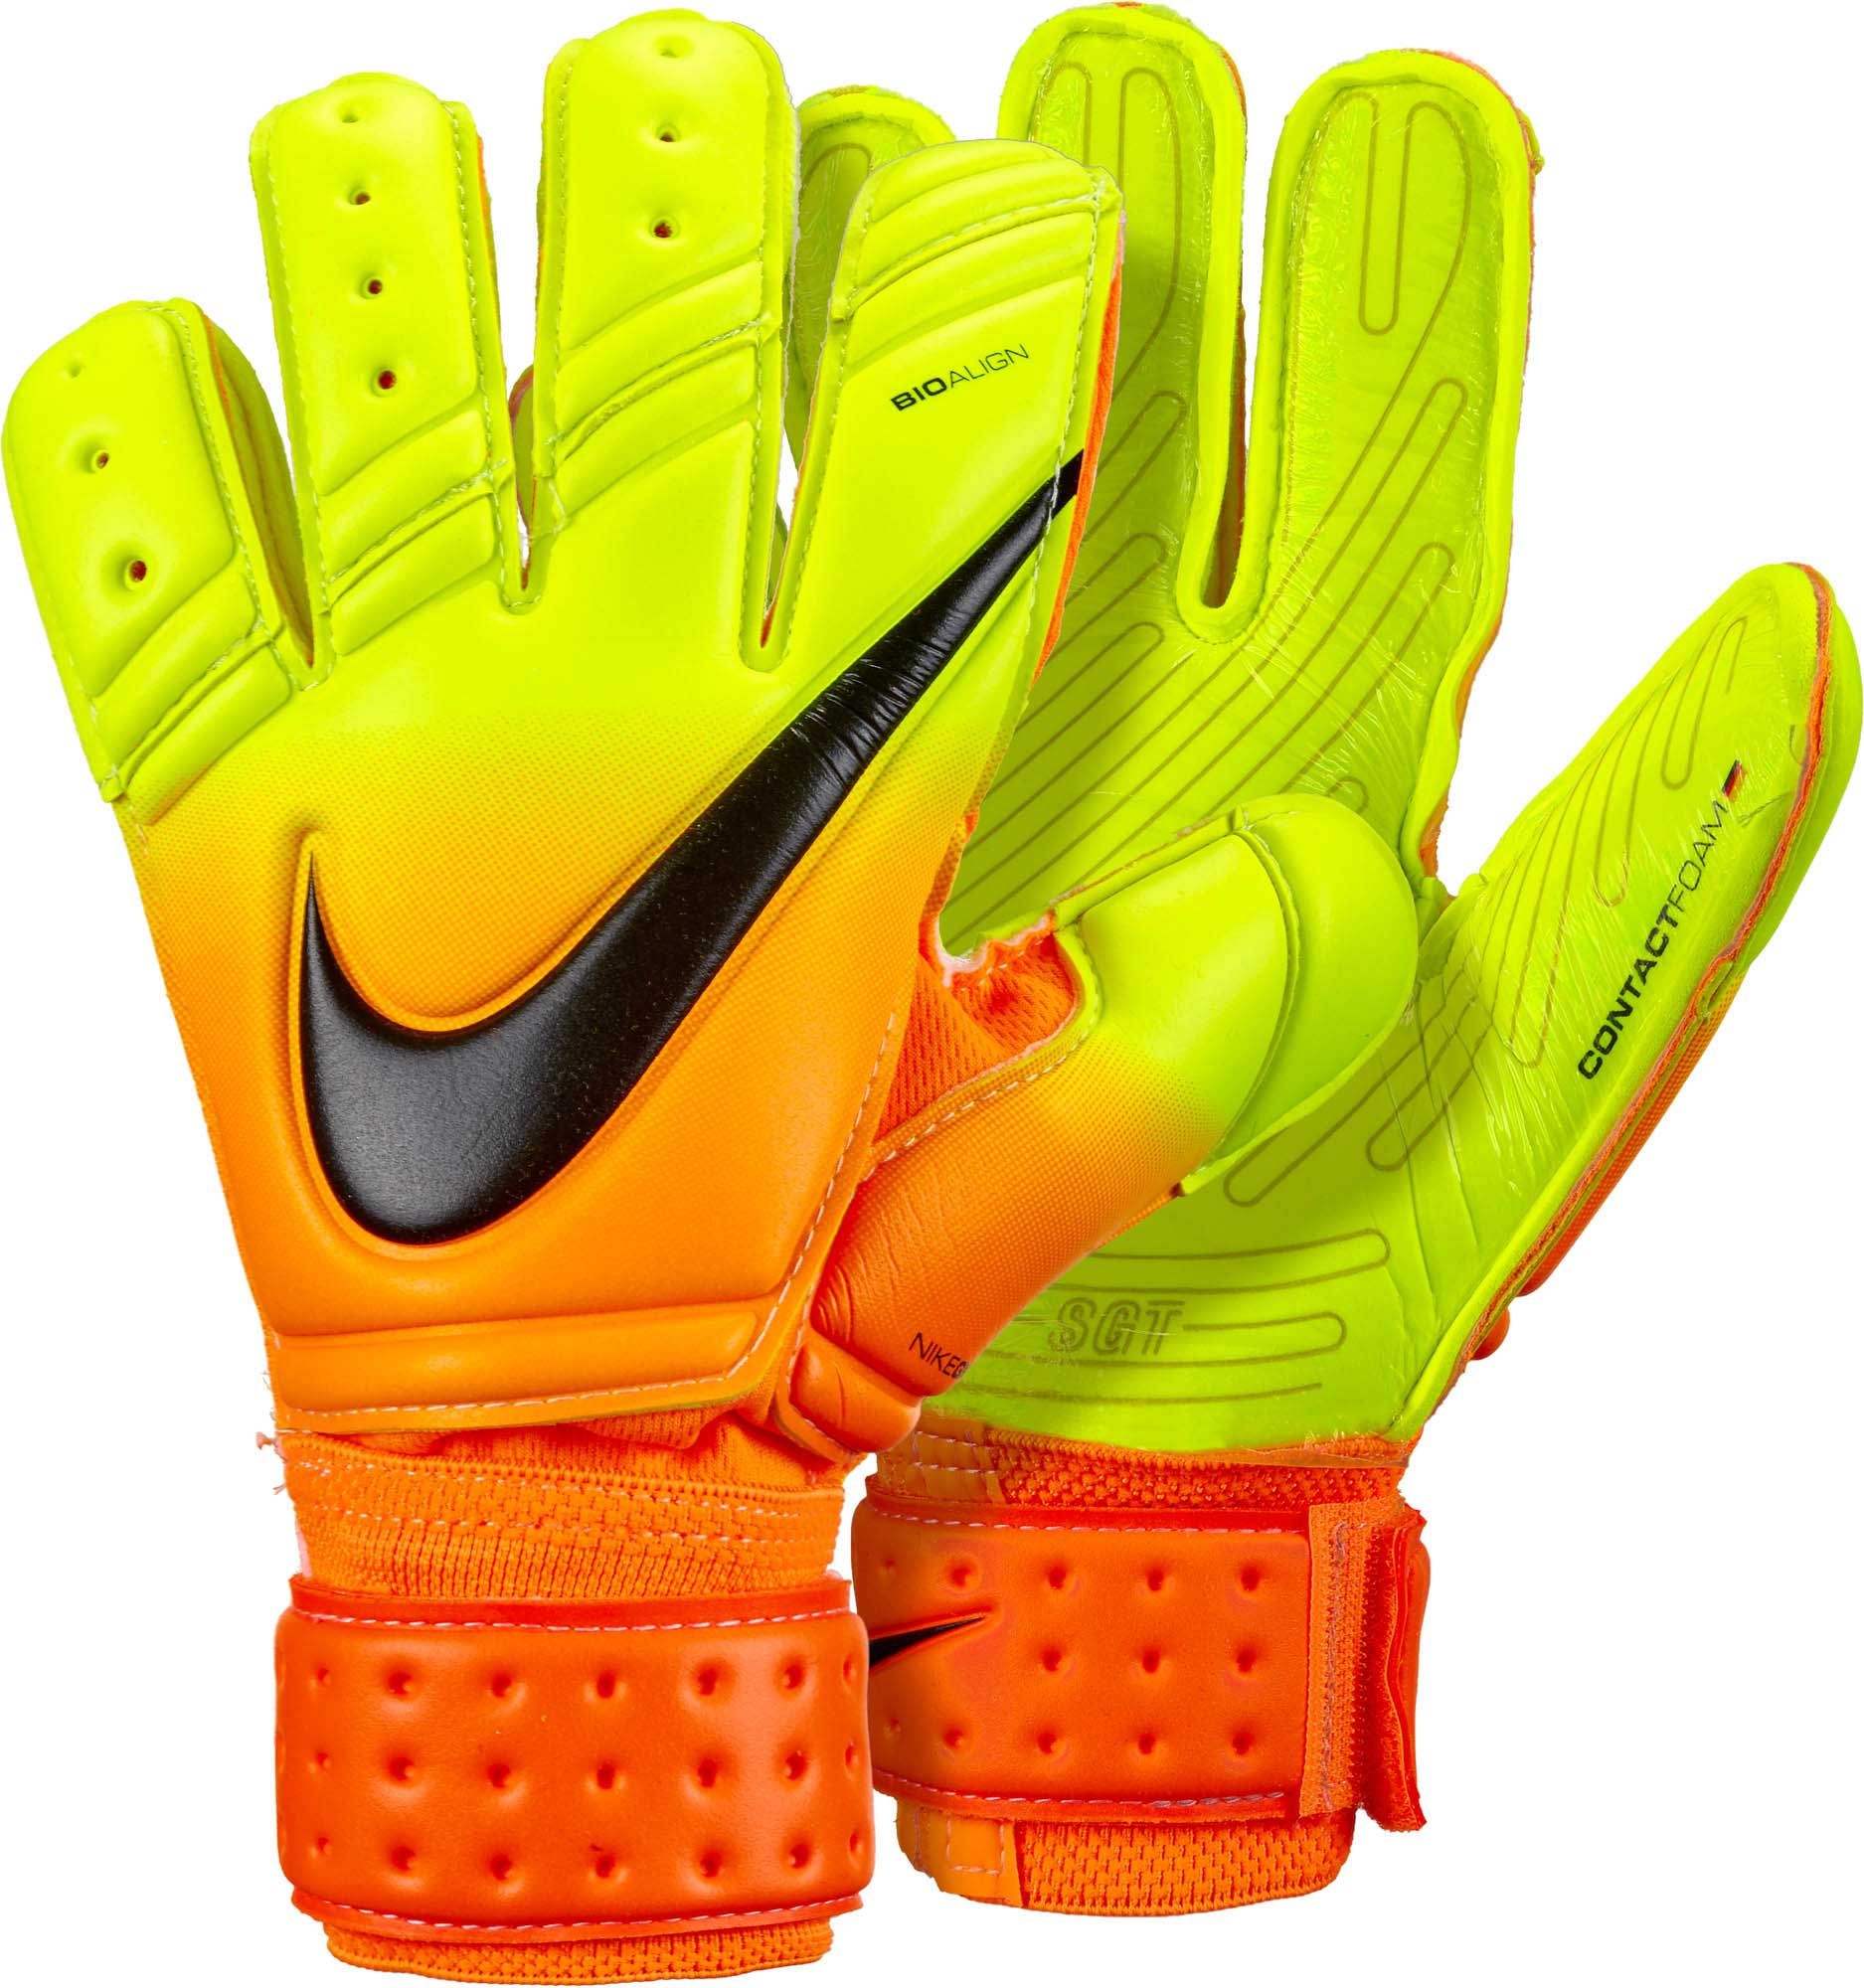 Nike Soccer Gloves: Nike Premier SGT Goalie Gloves